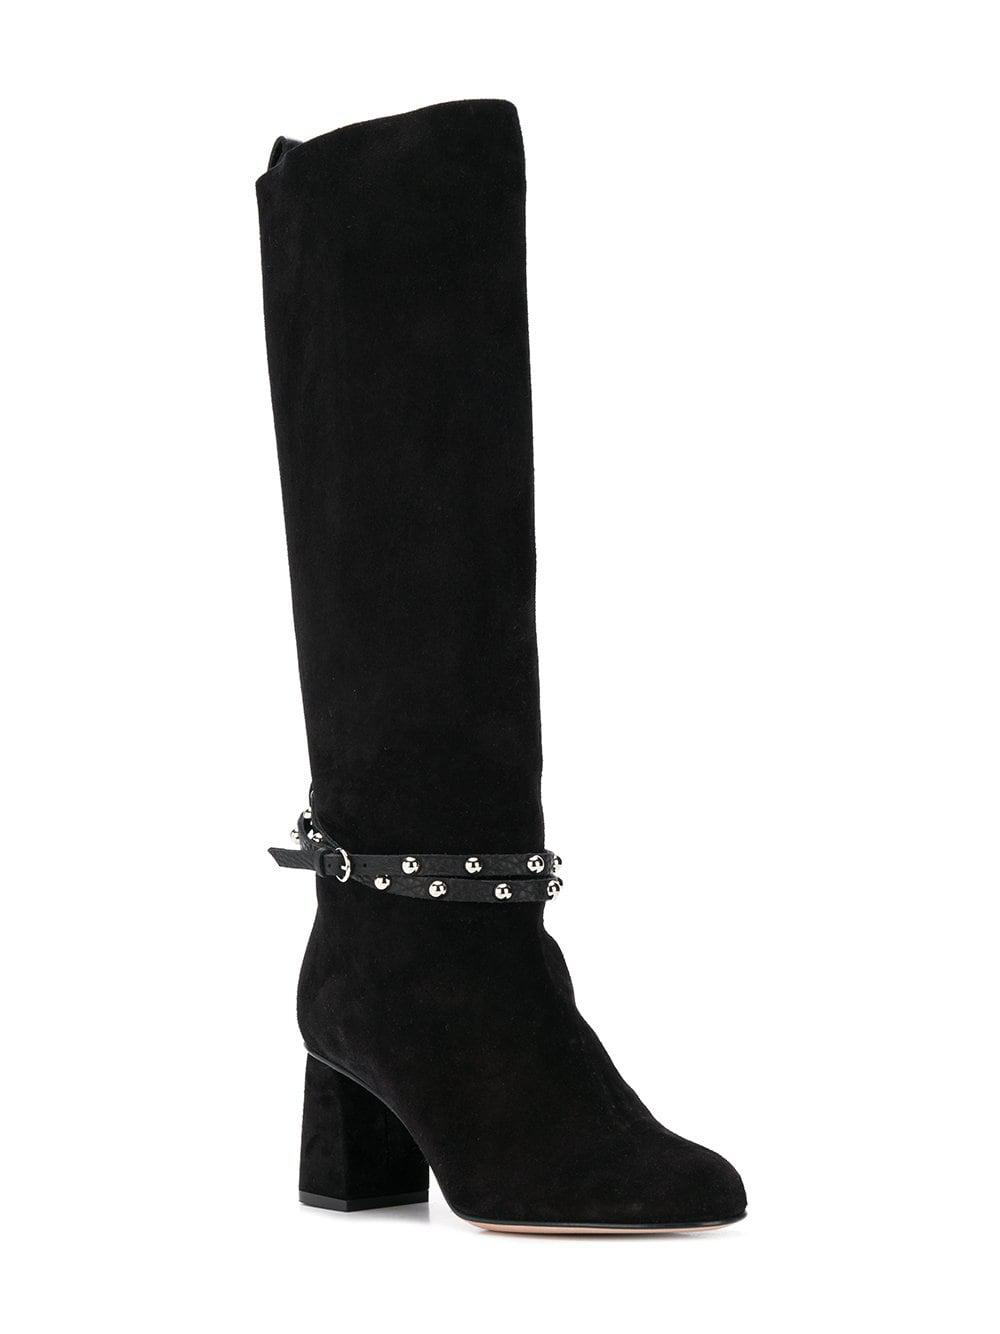 Lyst - RED Valentino Red(v) Studded Ankle Strap Boots in Black 8d66c3d0606c9